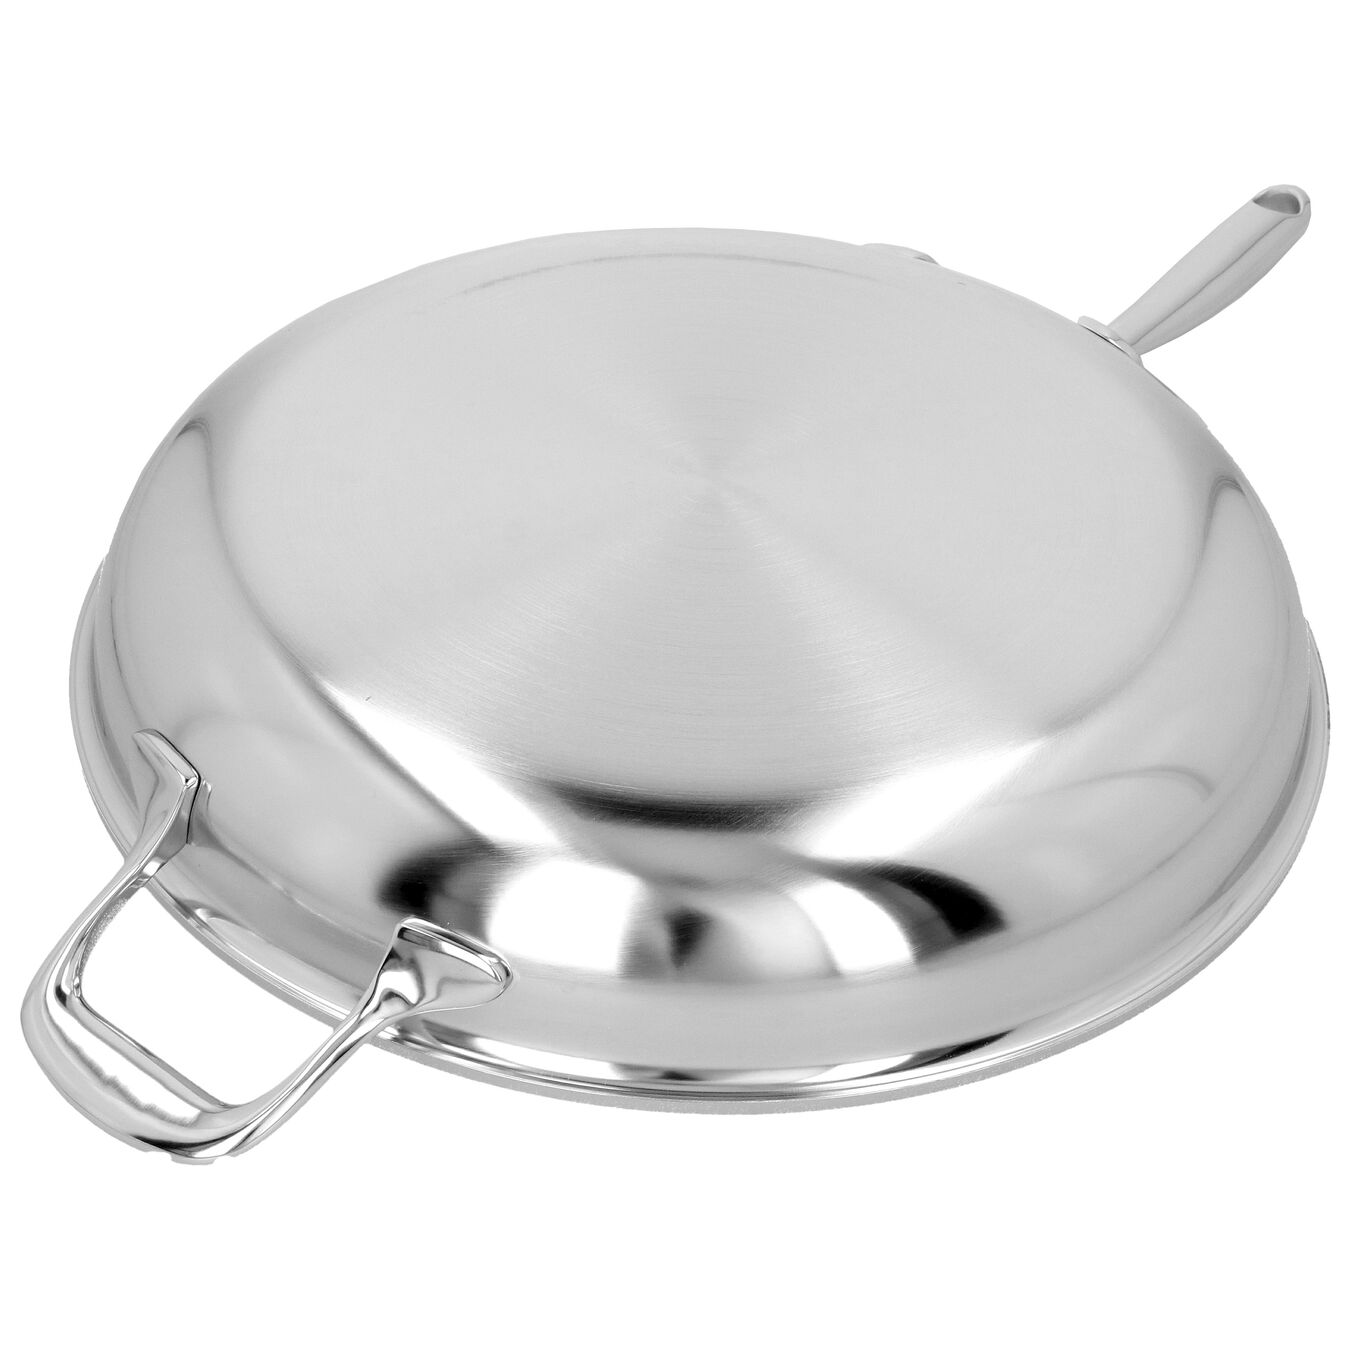 12.5-inch, 18/10 Stainless Steel, Frying pan,,large 5